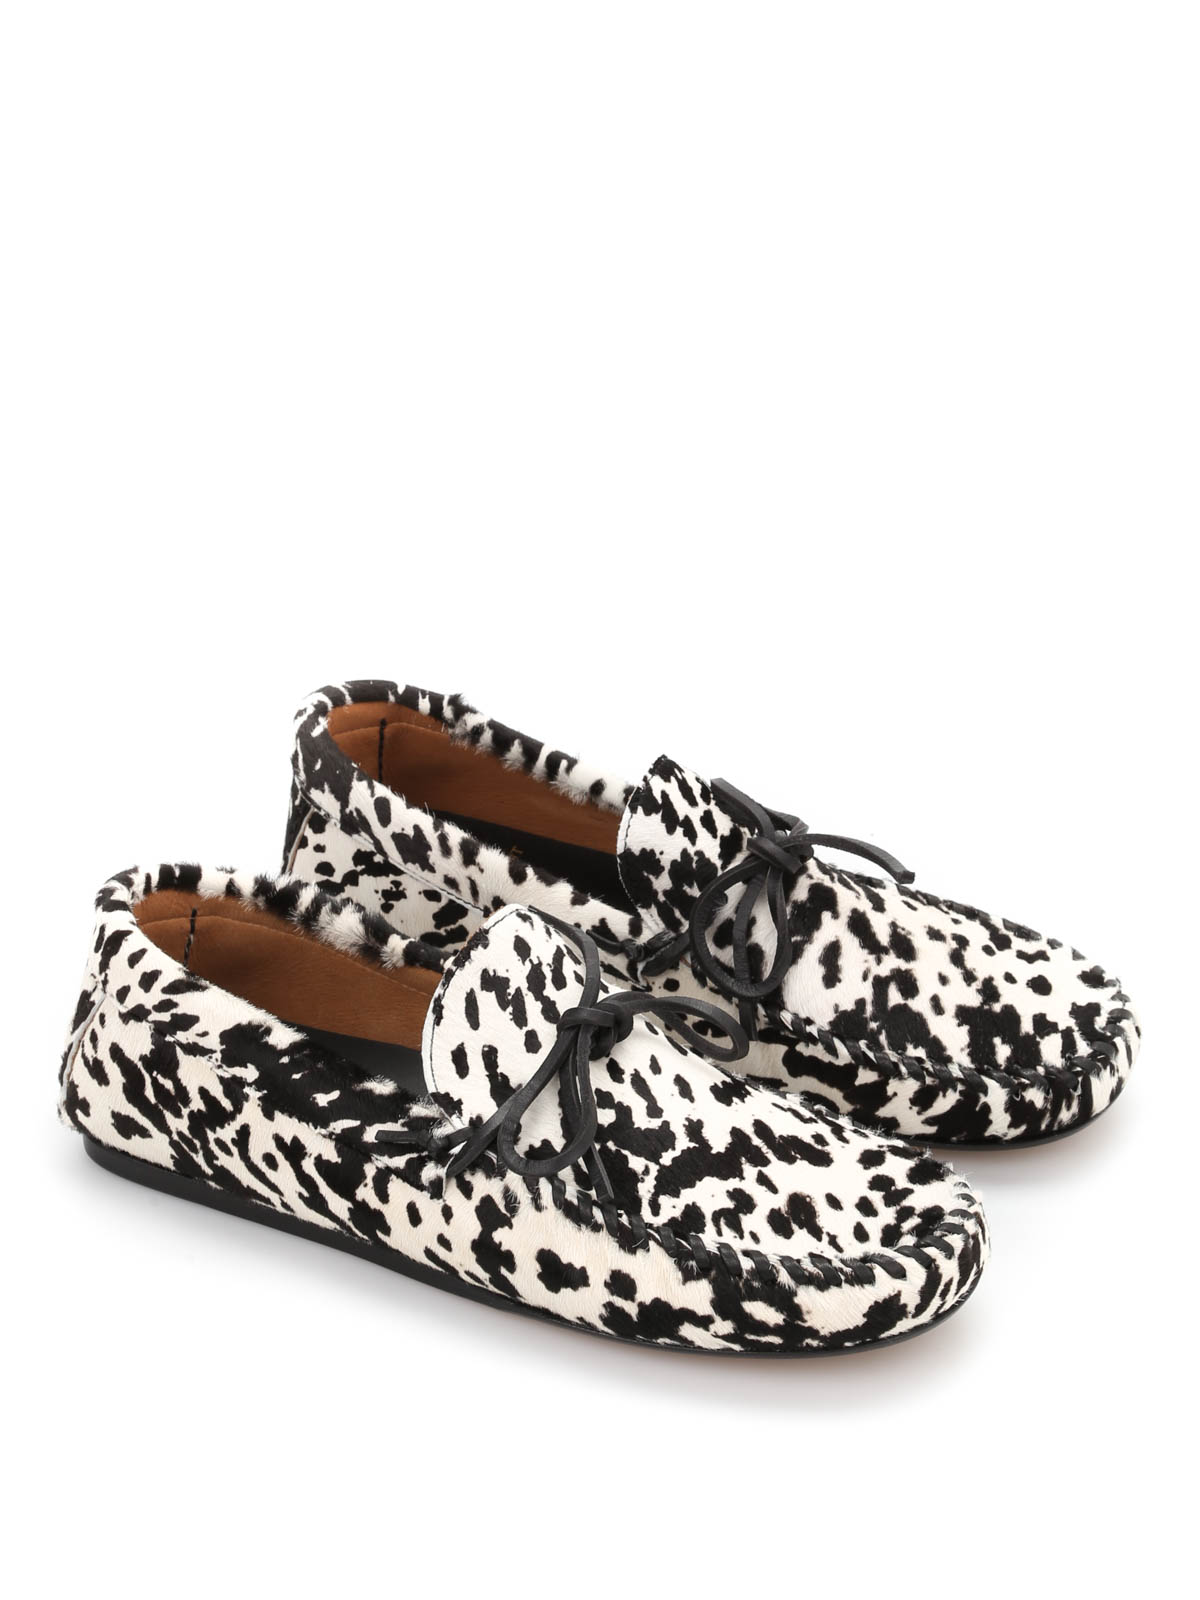 095a441c157 Isabel marant etoile - Fodih loafers - Loafers   Slippers ...